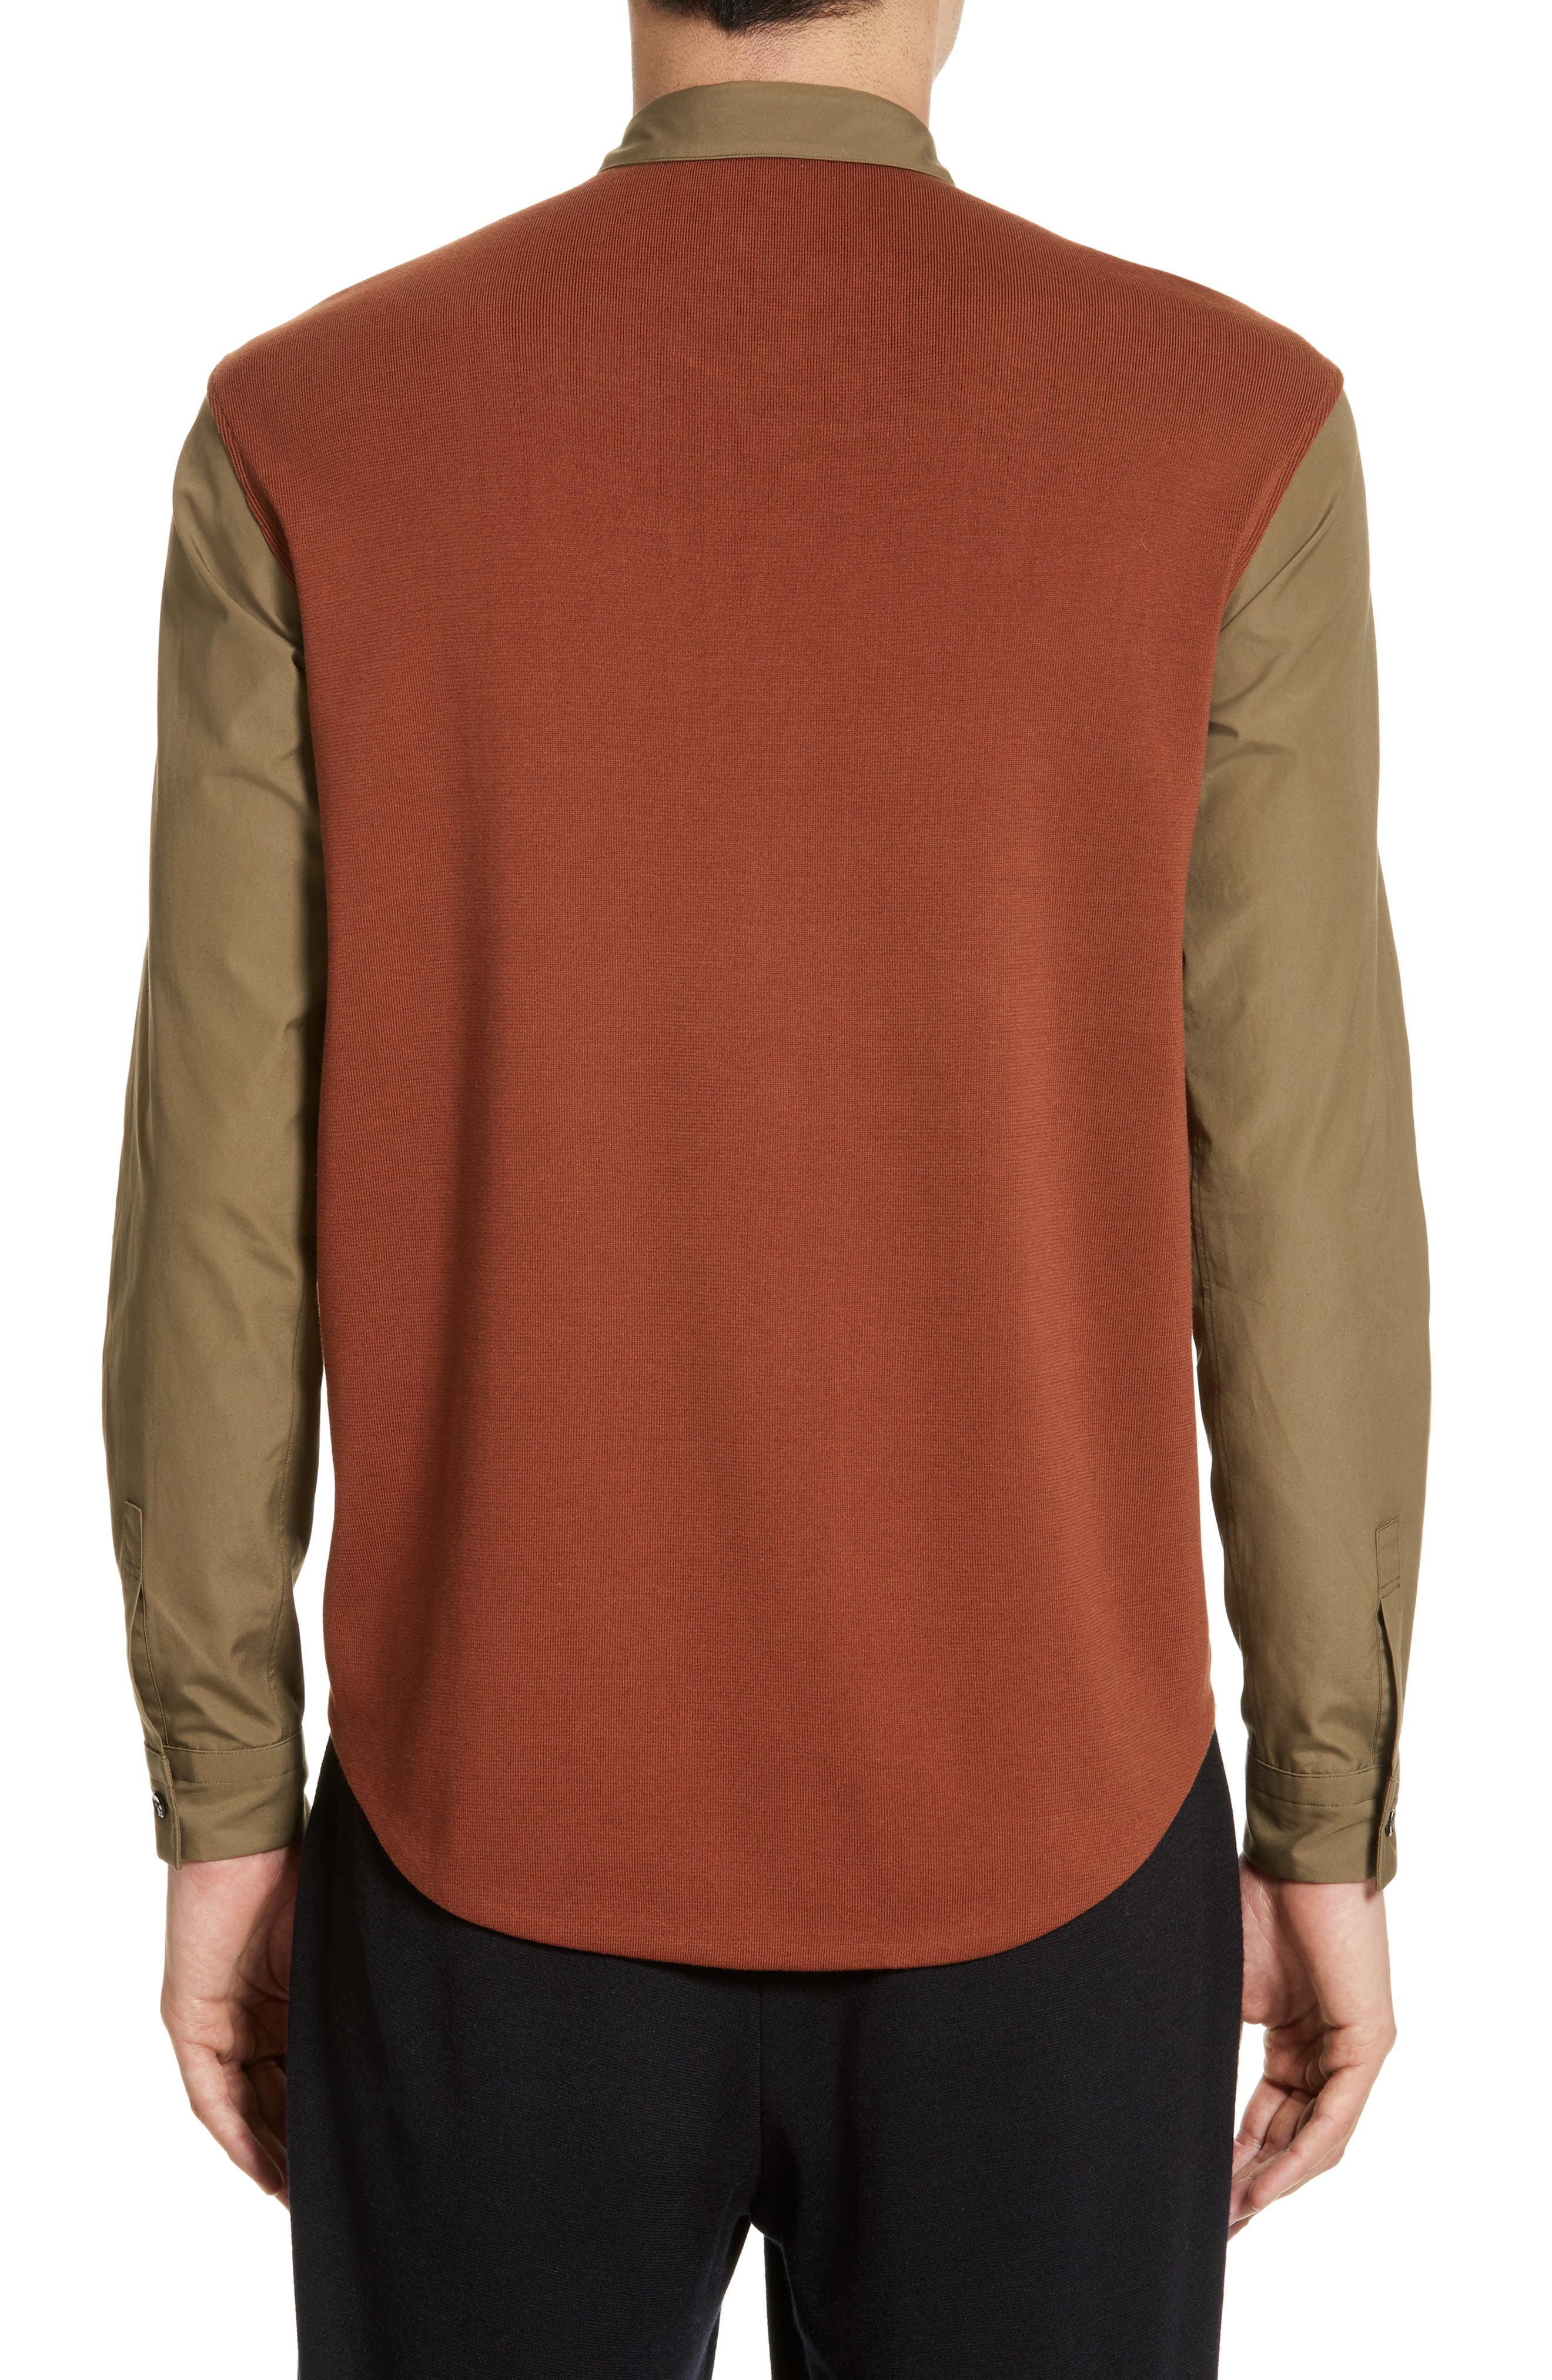 Tricot Colorblock Sport Shirt,                             Alternate thumbnail 2, color,                             301